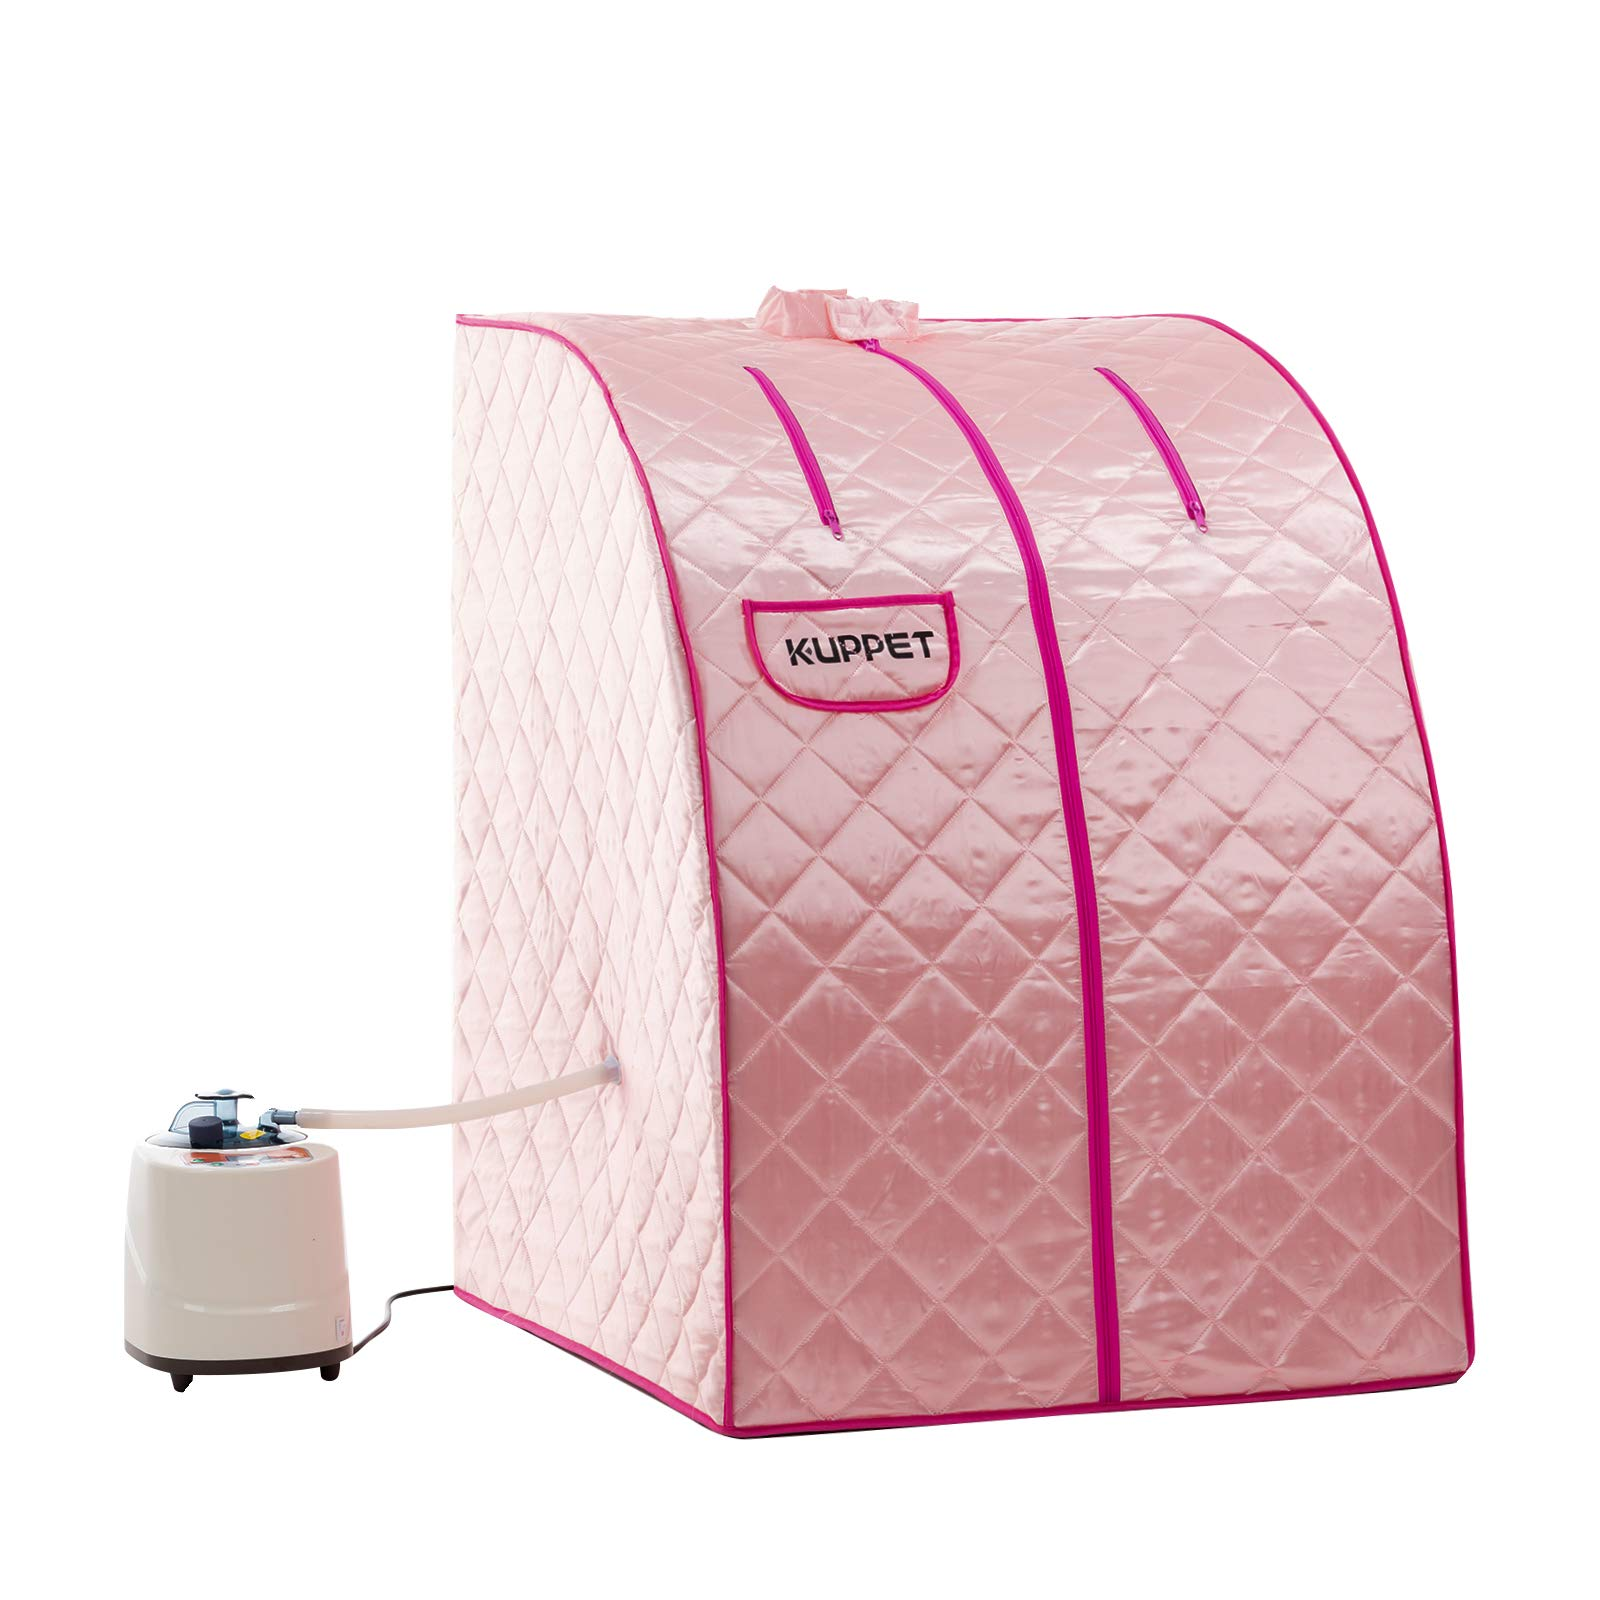 KUPPET Portable Folding Steam Sauna-2L One Person Home Sauna Spa for Full Body Slimming Loss Weight w/Chair, Remote Control, Steam Pot, Foot Rest, Mat (Pink) by KUPPET